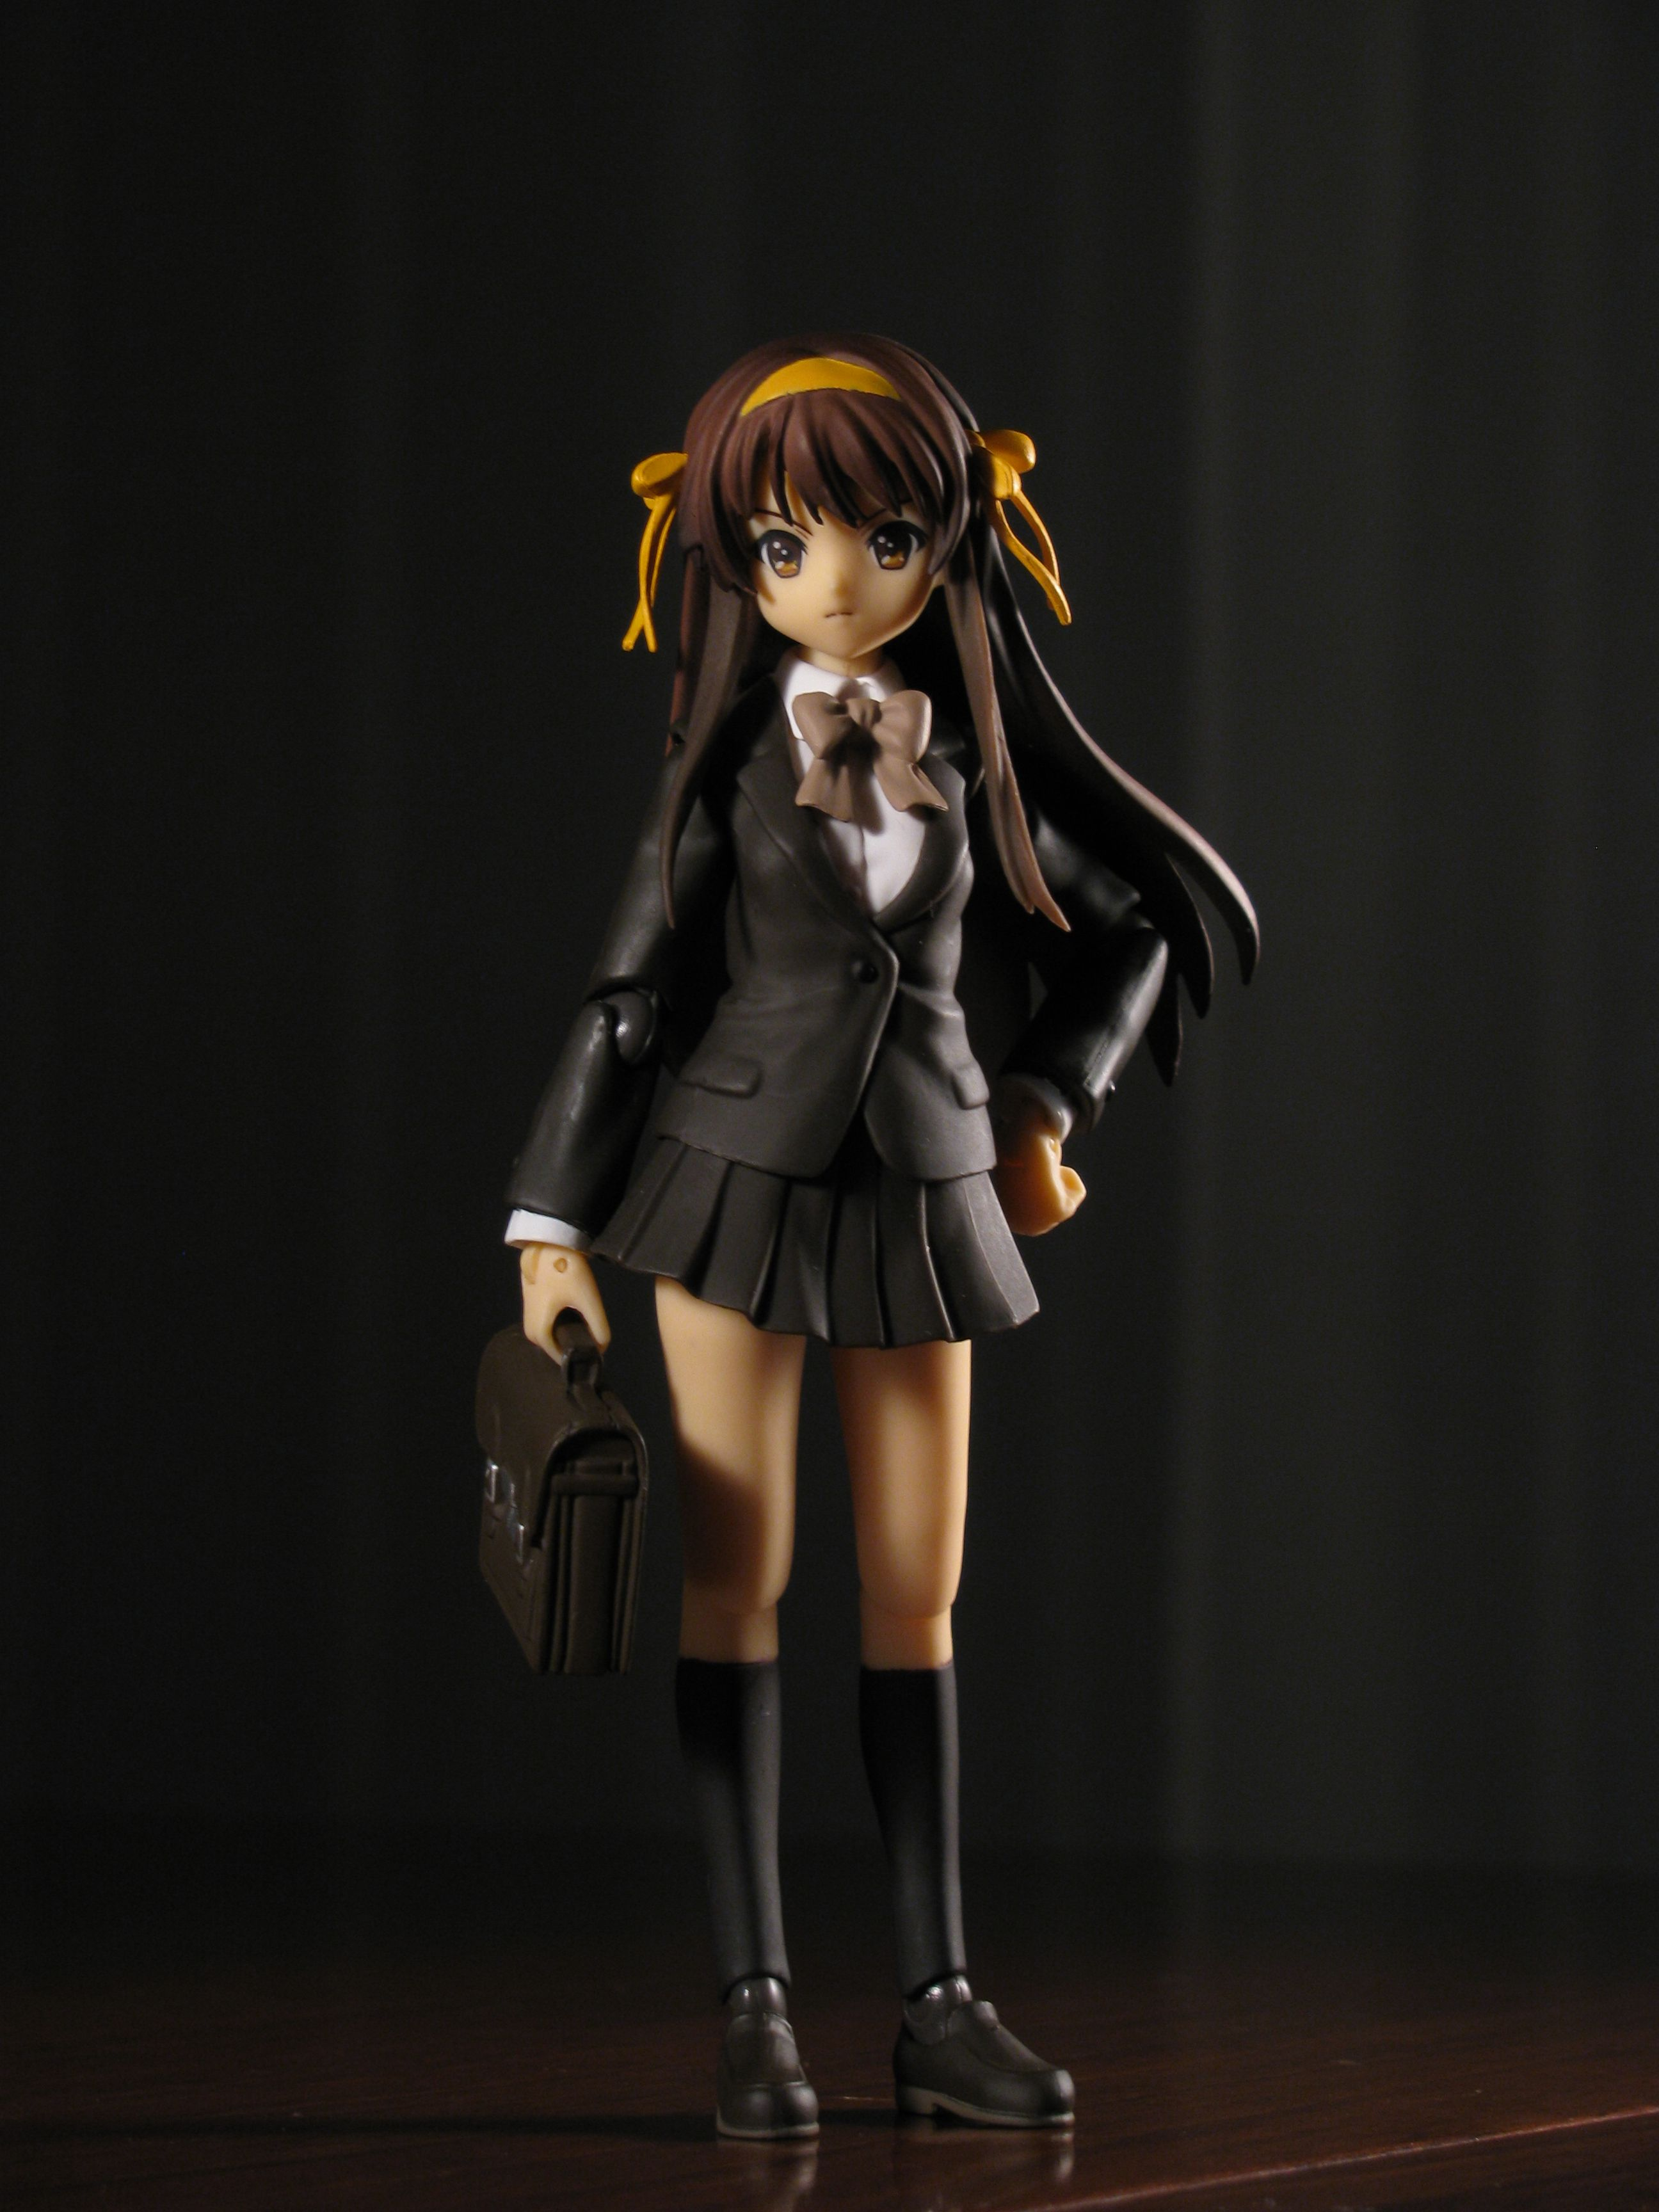 figma school_uniform school_bag black_dress black_skirt long_hair max_factory suzumiya_haruhi